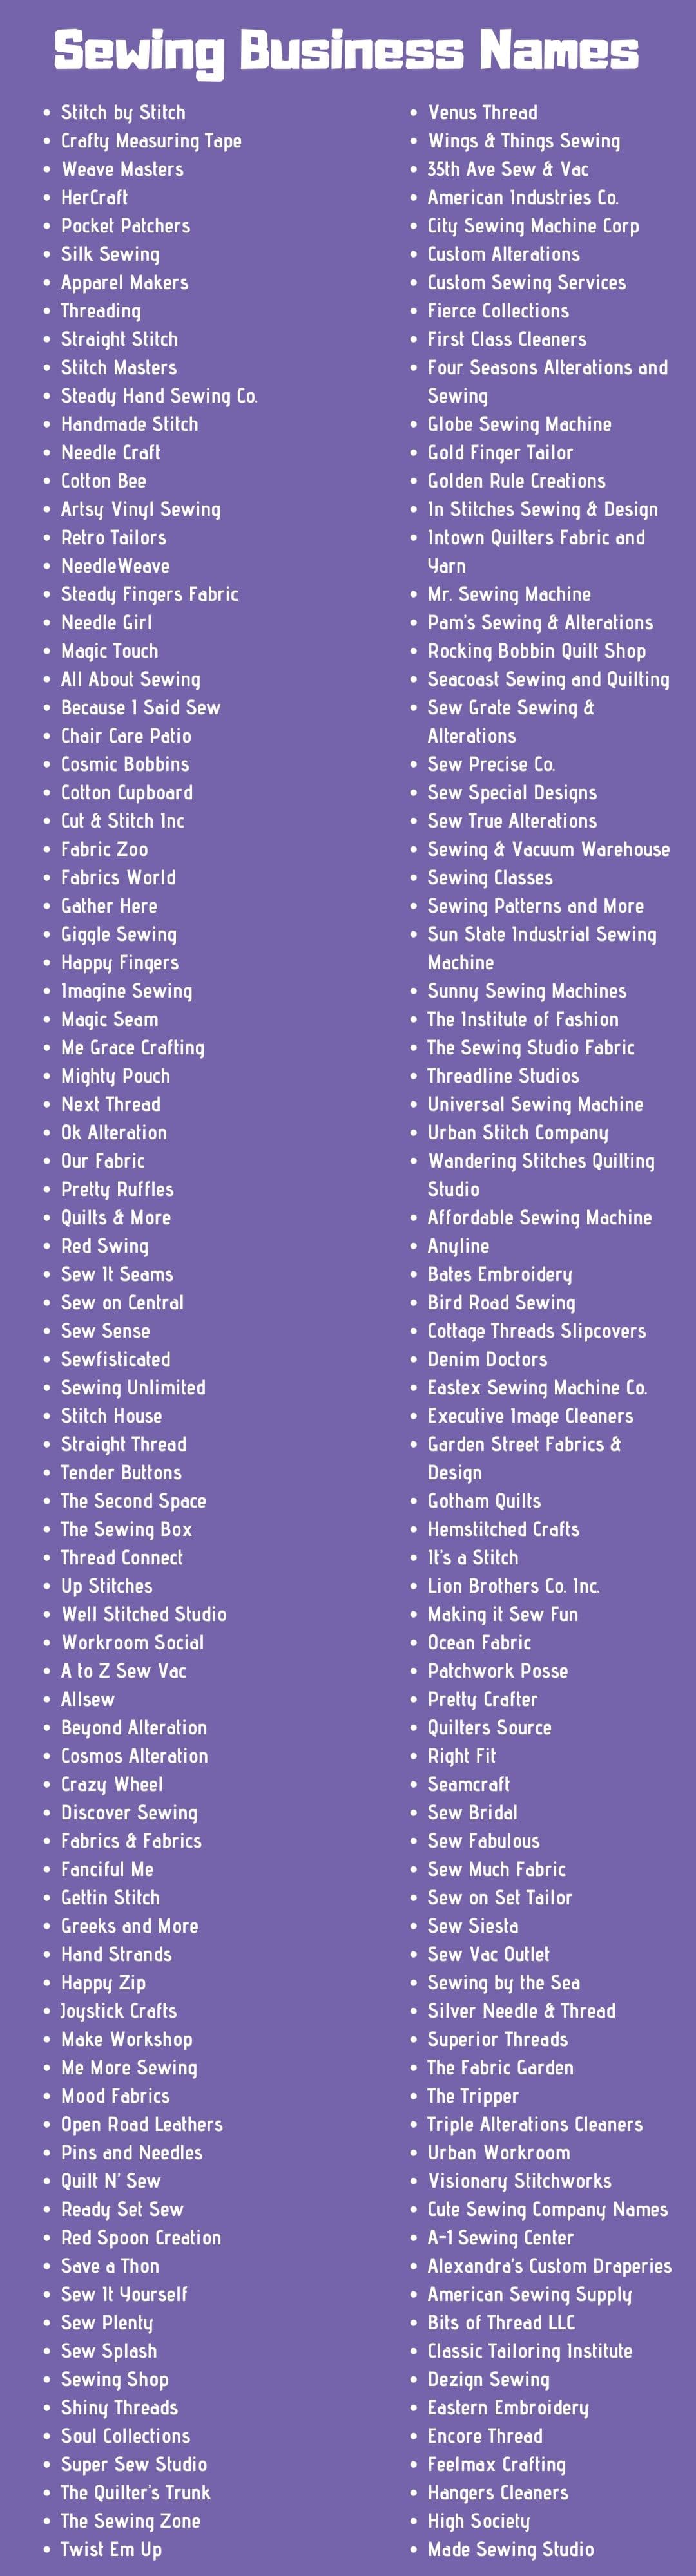 370 Most Creative Sewing Business Names And Ideas